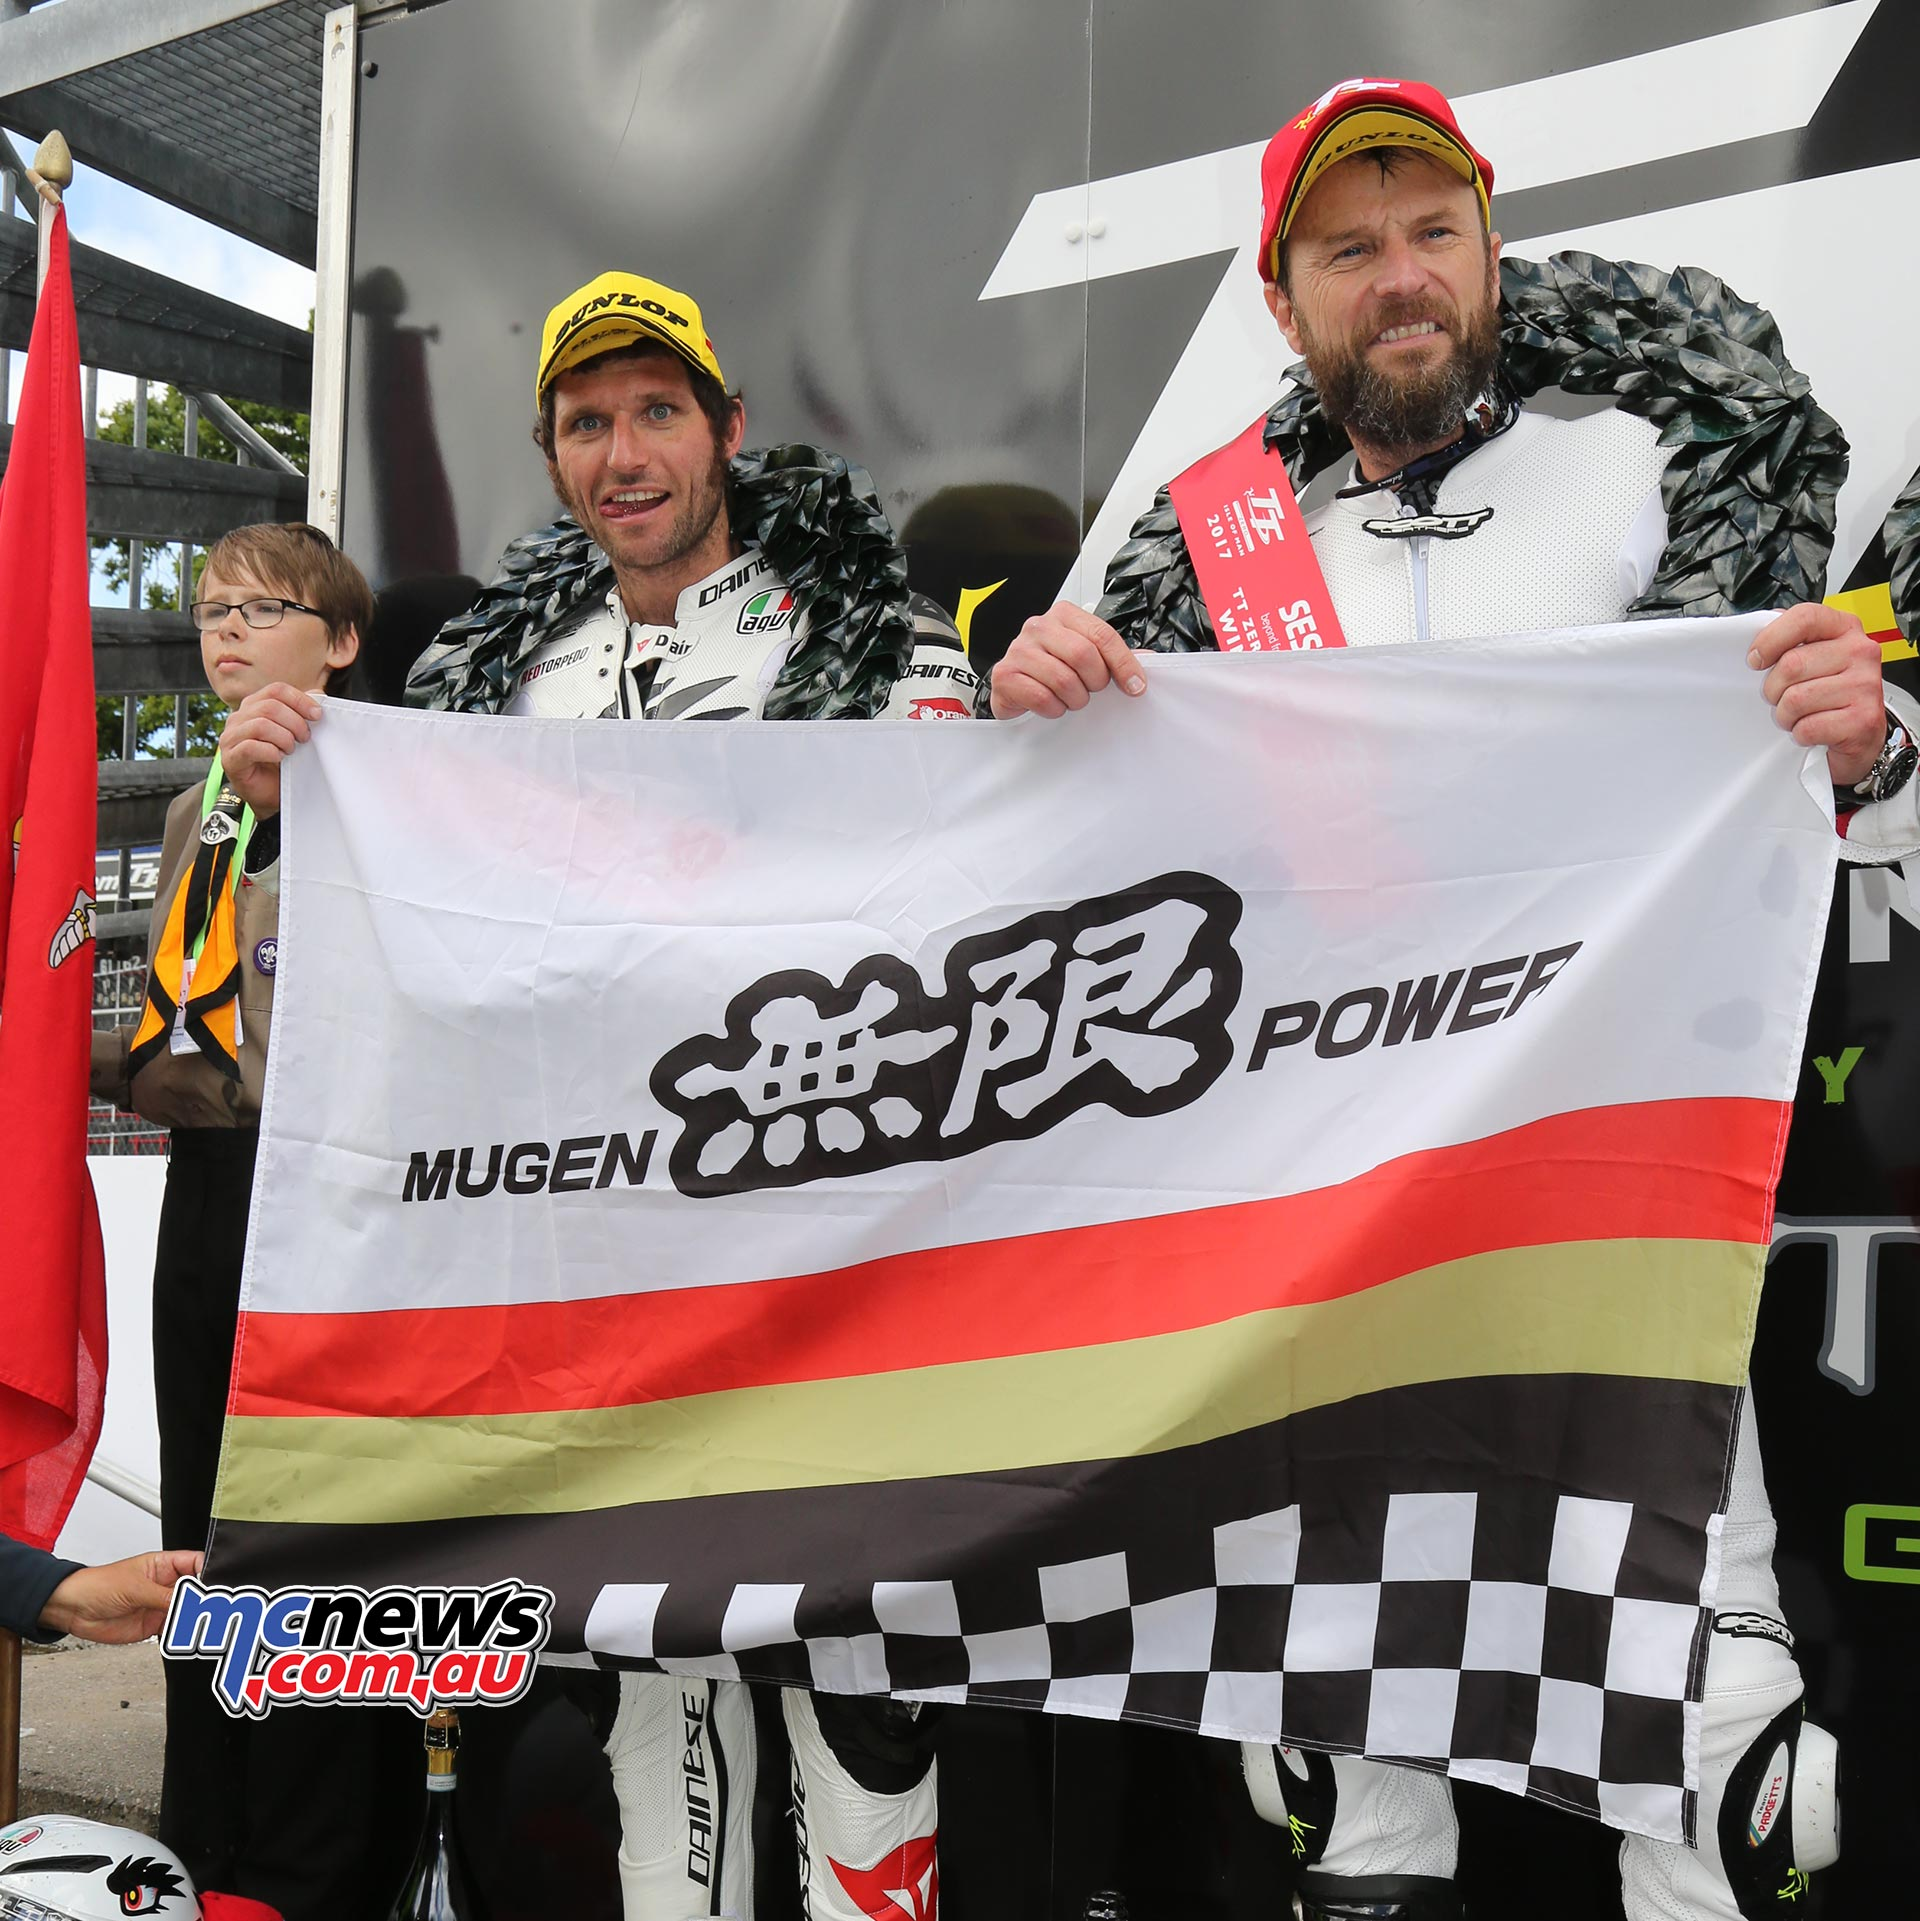 Bruce Anstey and Guy Martin flying the Mugden flag after their victory